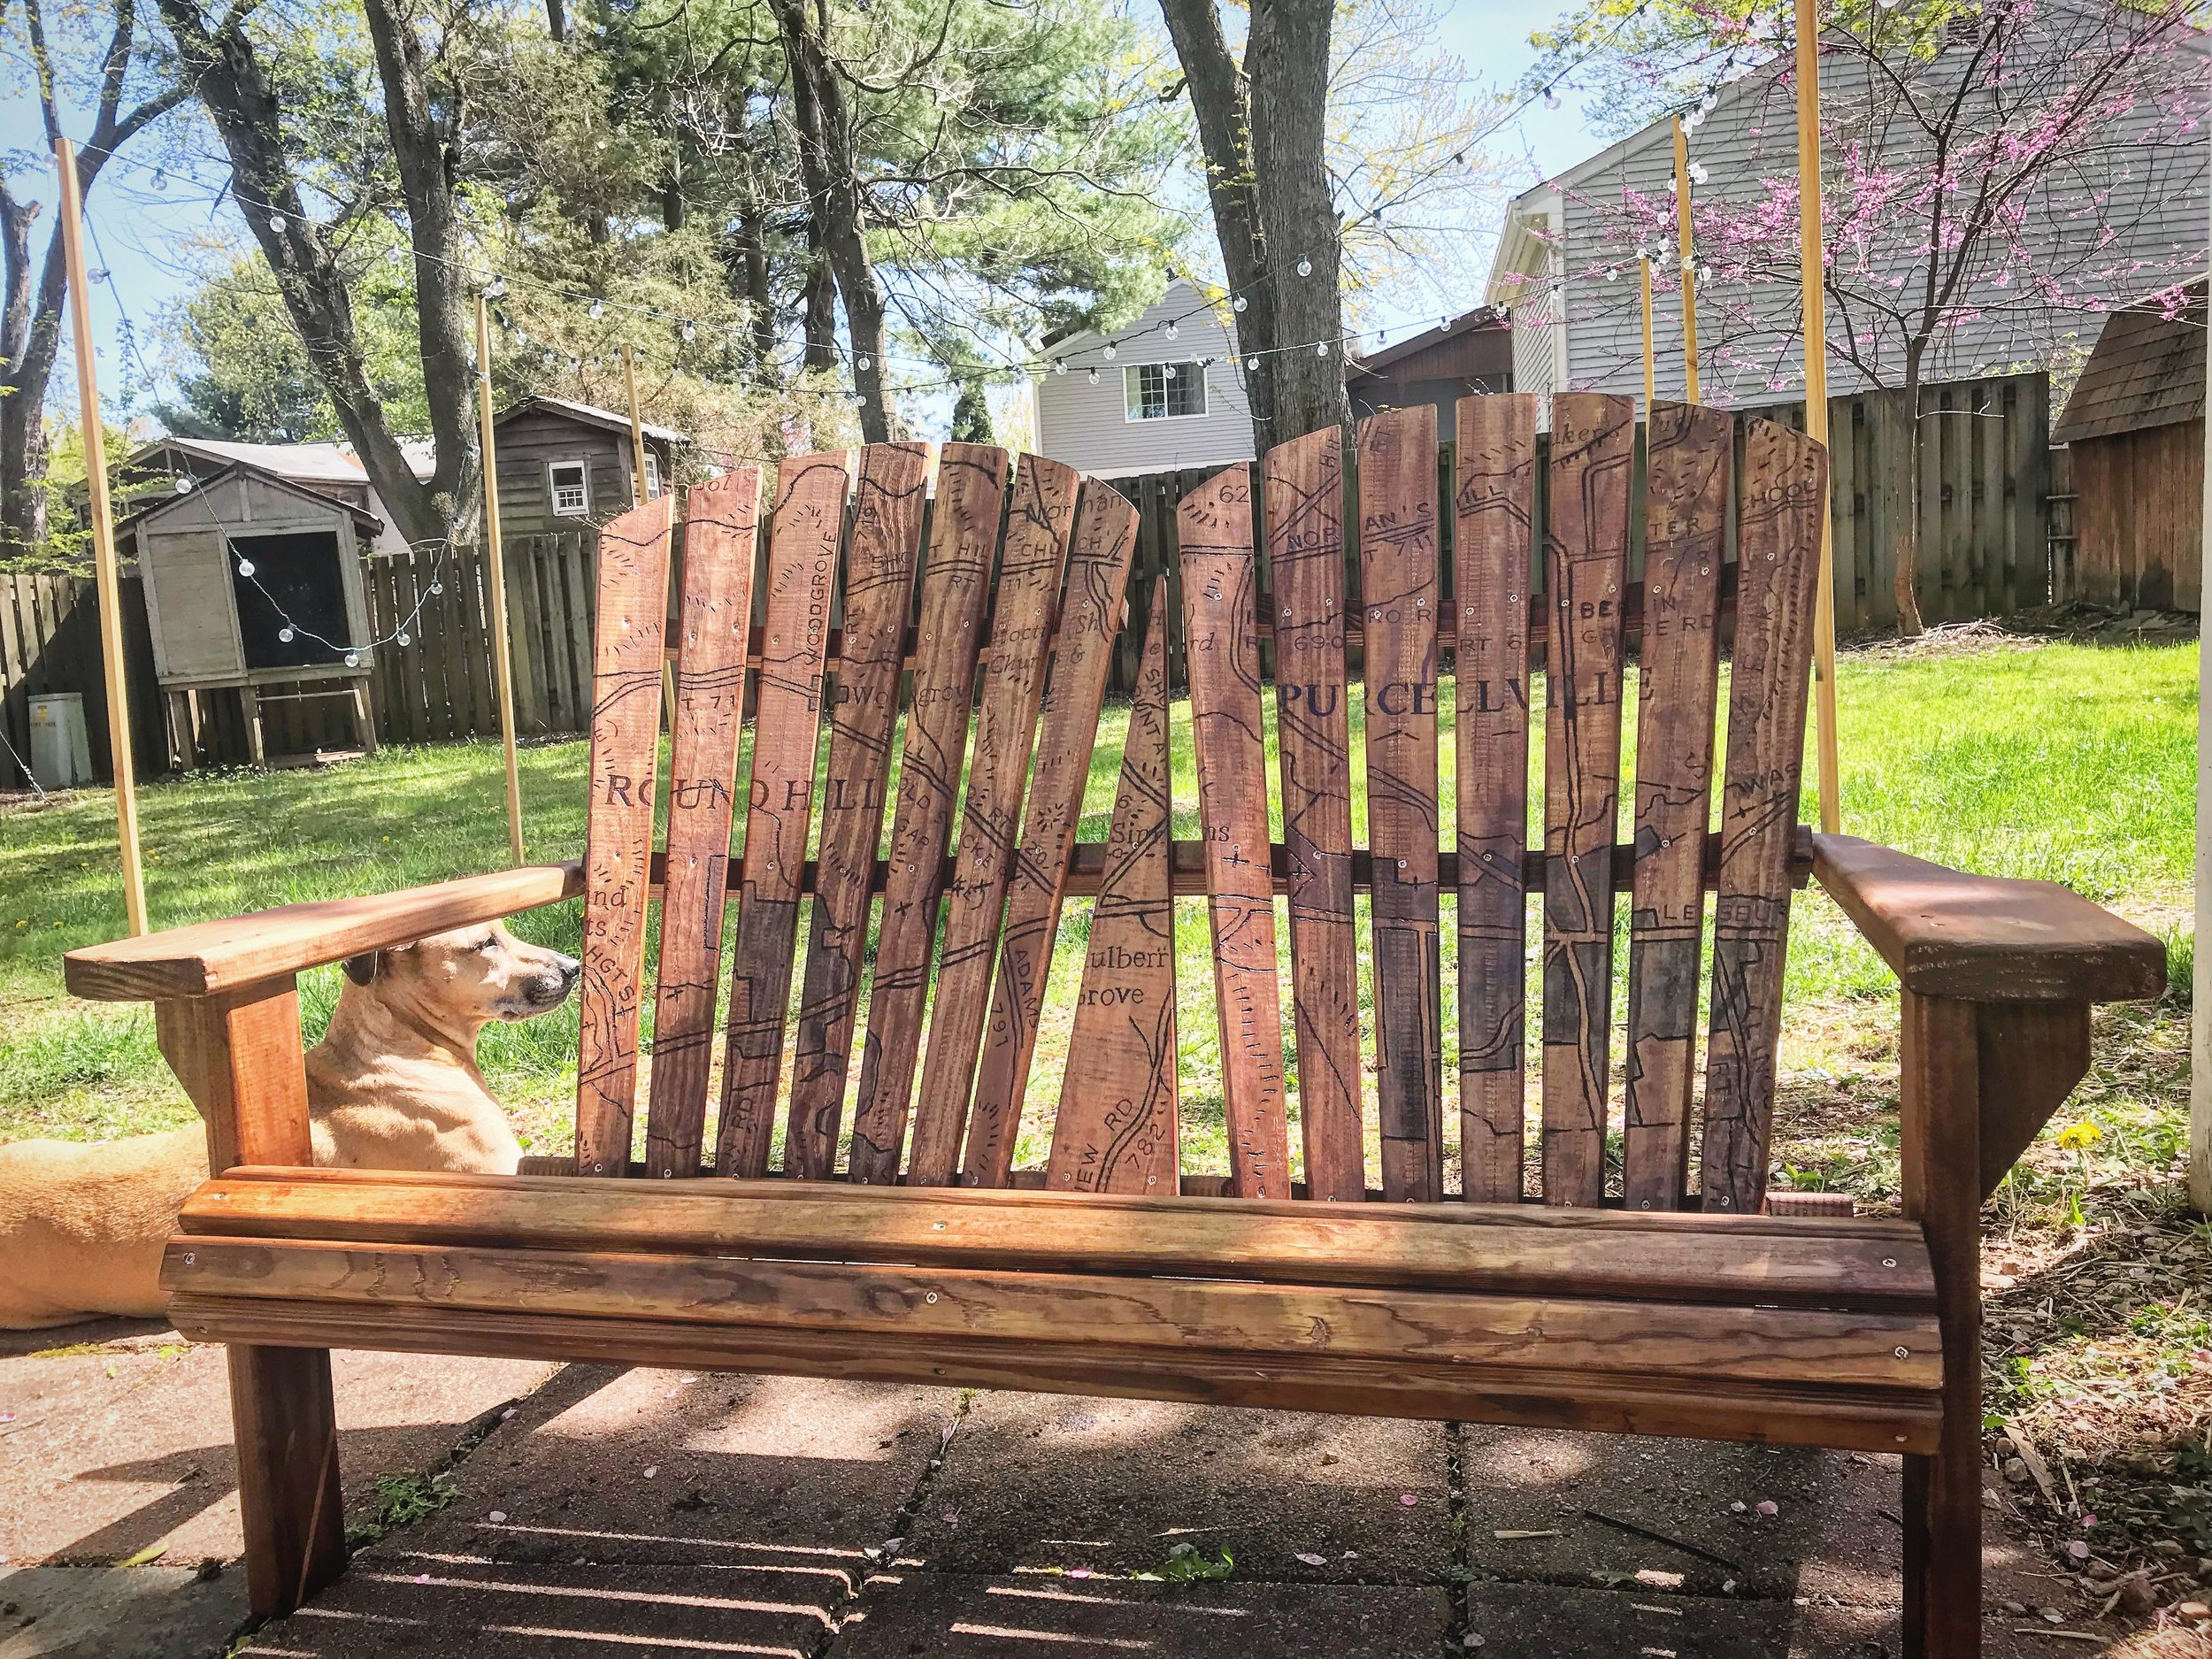 """Bench designed for Discover Purcellville titled """"Woodgrove"""" — Sold at auction for $1650   This bench was created for the Discover Purcellville arts program for the summer of 2018. It features a woodburned map of the Western Loudoun towns of Round Hill, Purcellville, and Woodgrove, a small settlement originally located just north of Round Hill. The bench sat in front of Catoctin Creek Distilling Co. in Purcellville, VA and went home with a private buyer after the auction in November."""